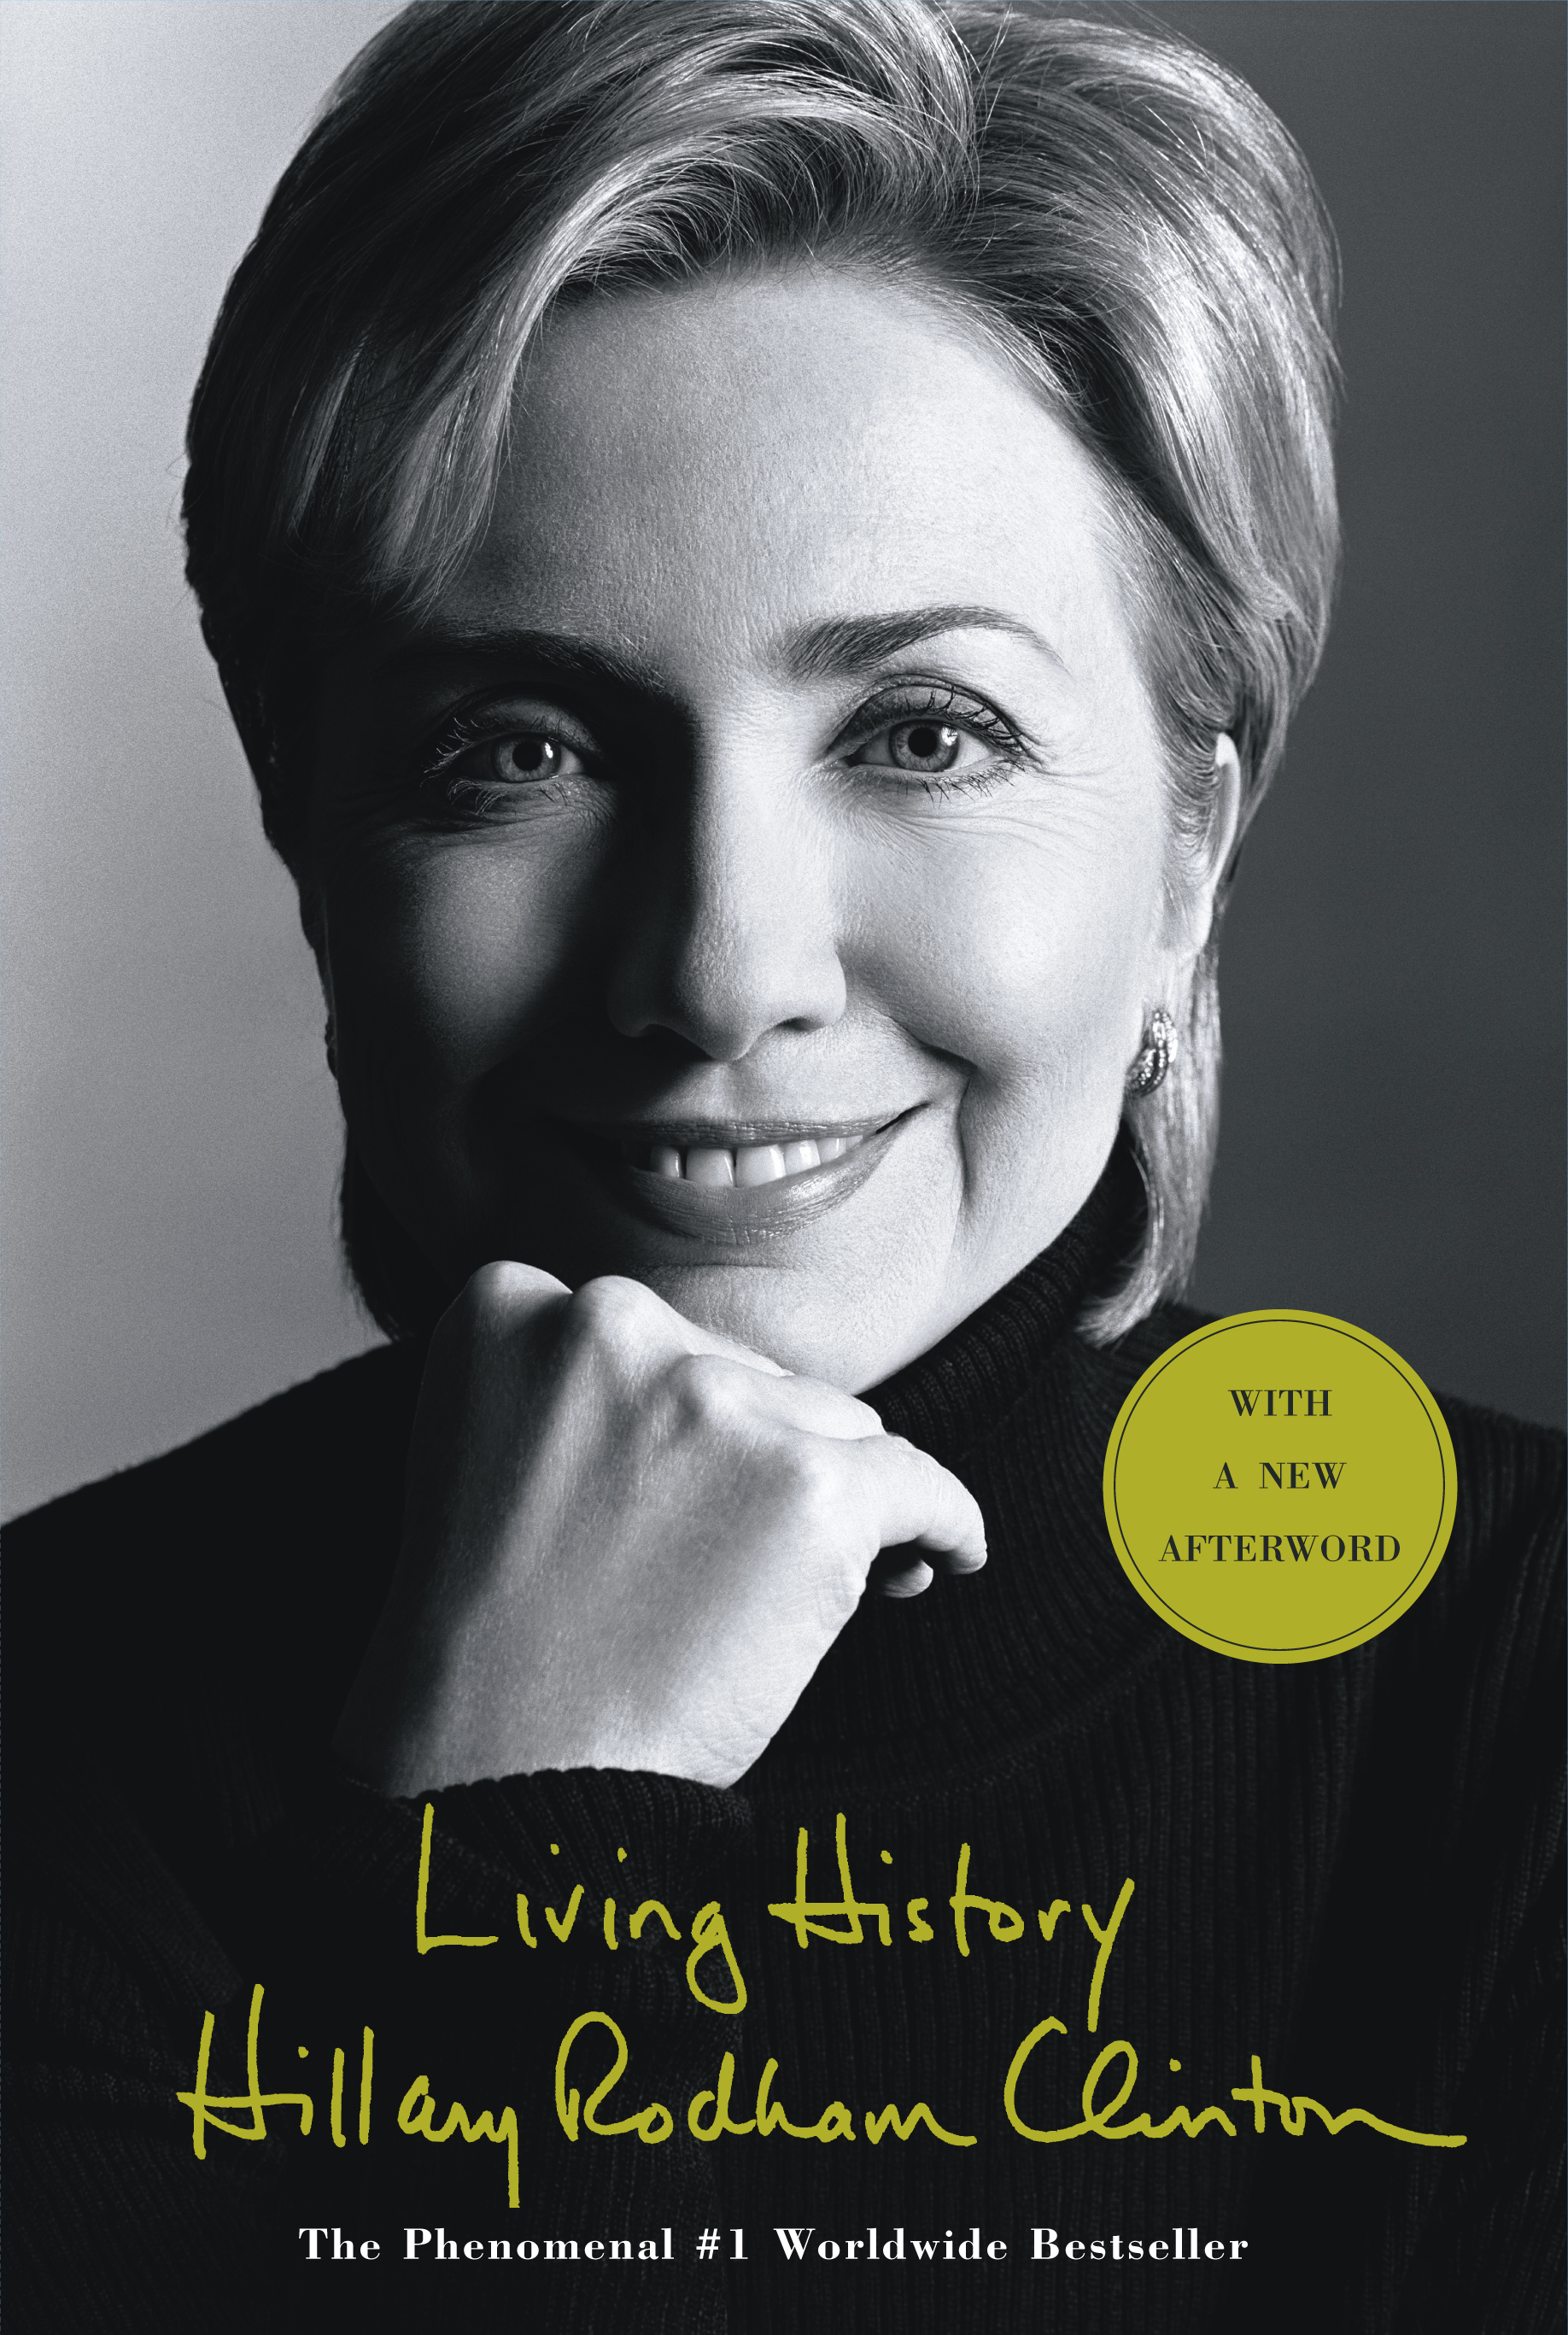 Town halls & book signings: A look at the presidential candidates as writers